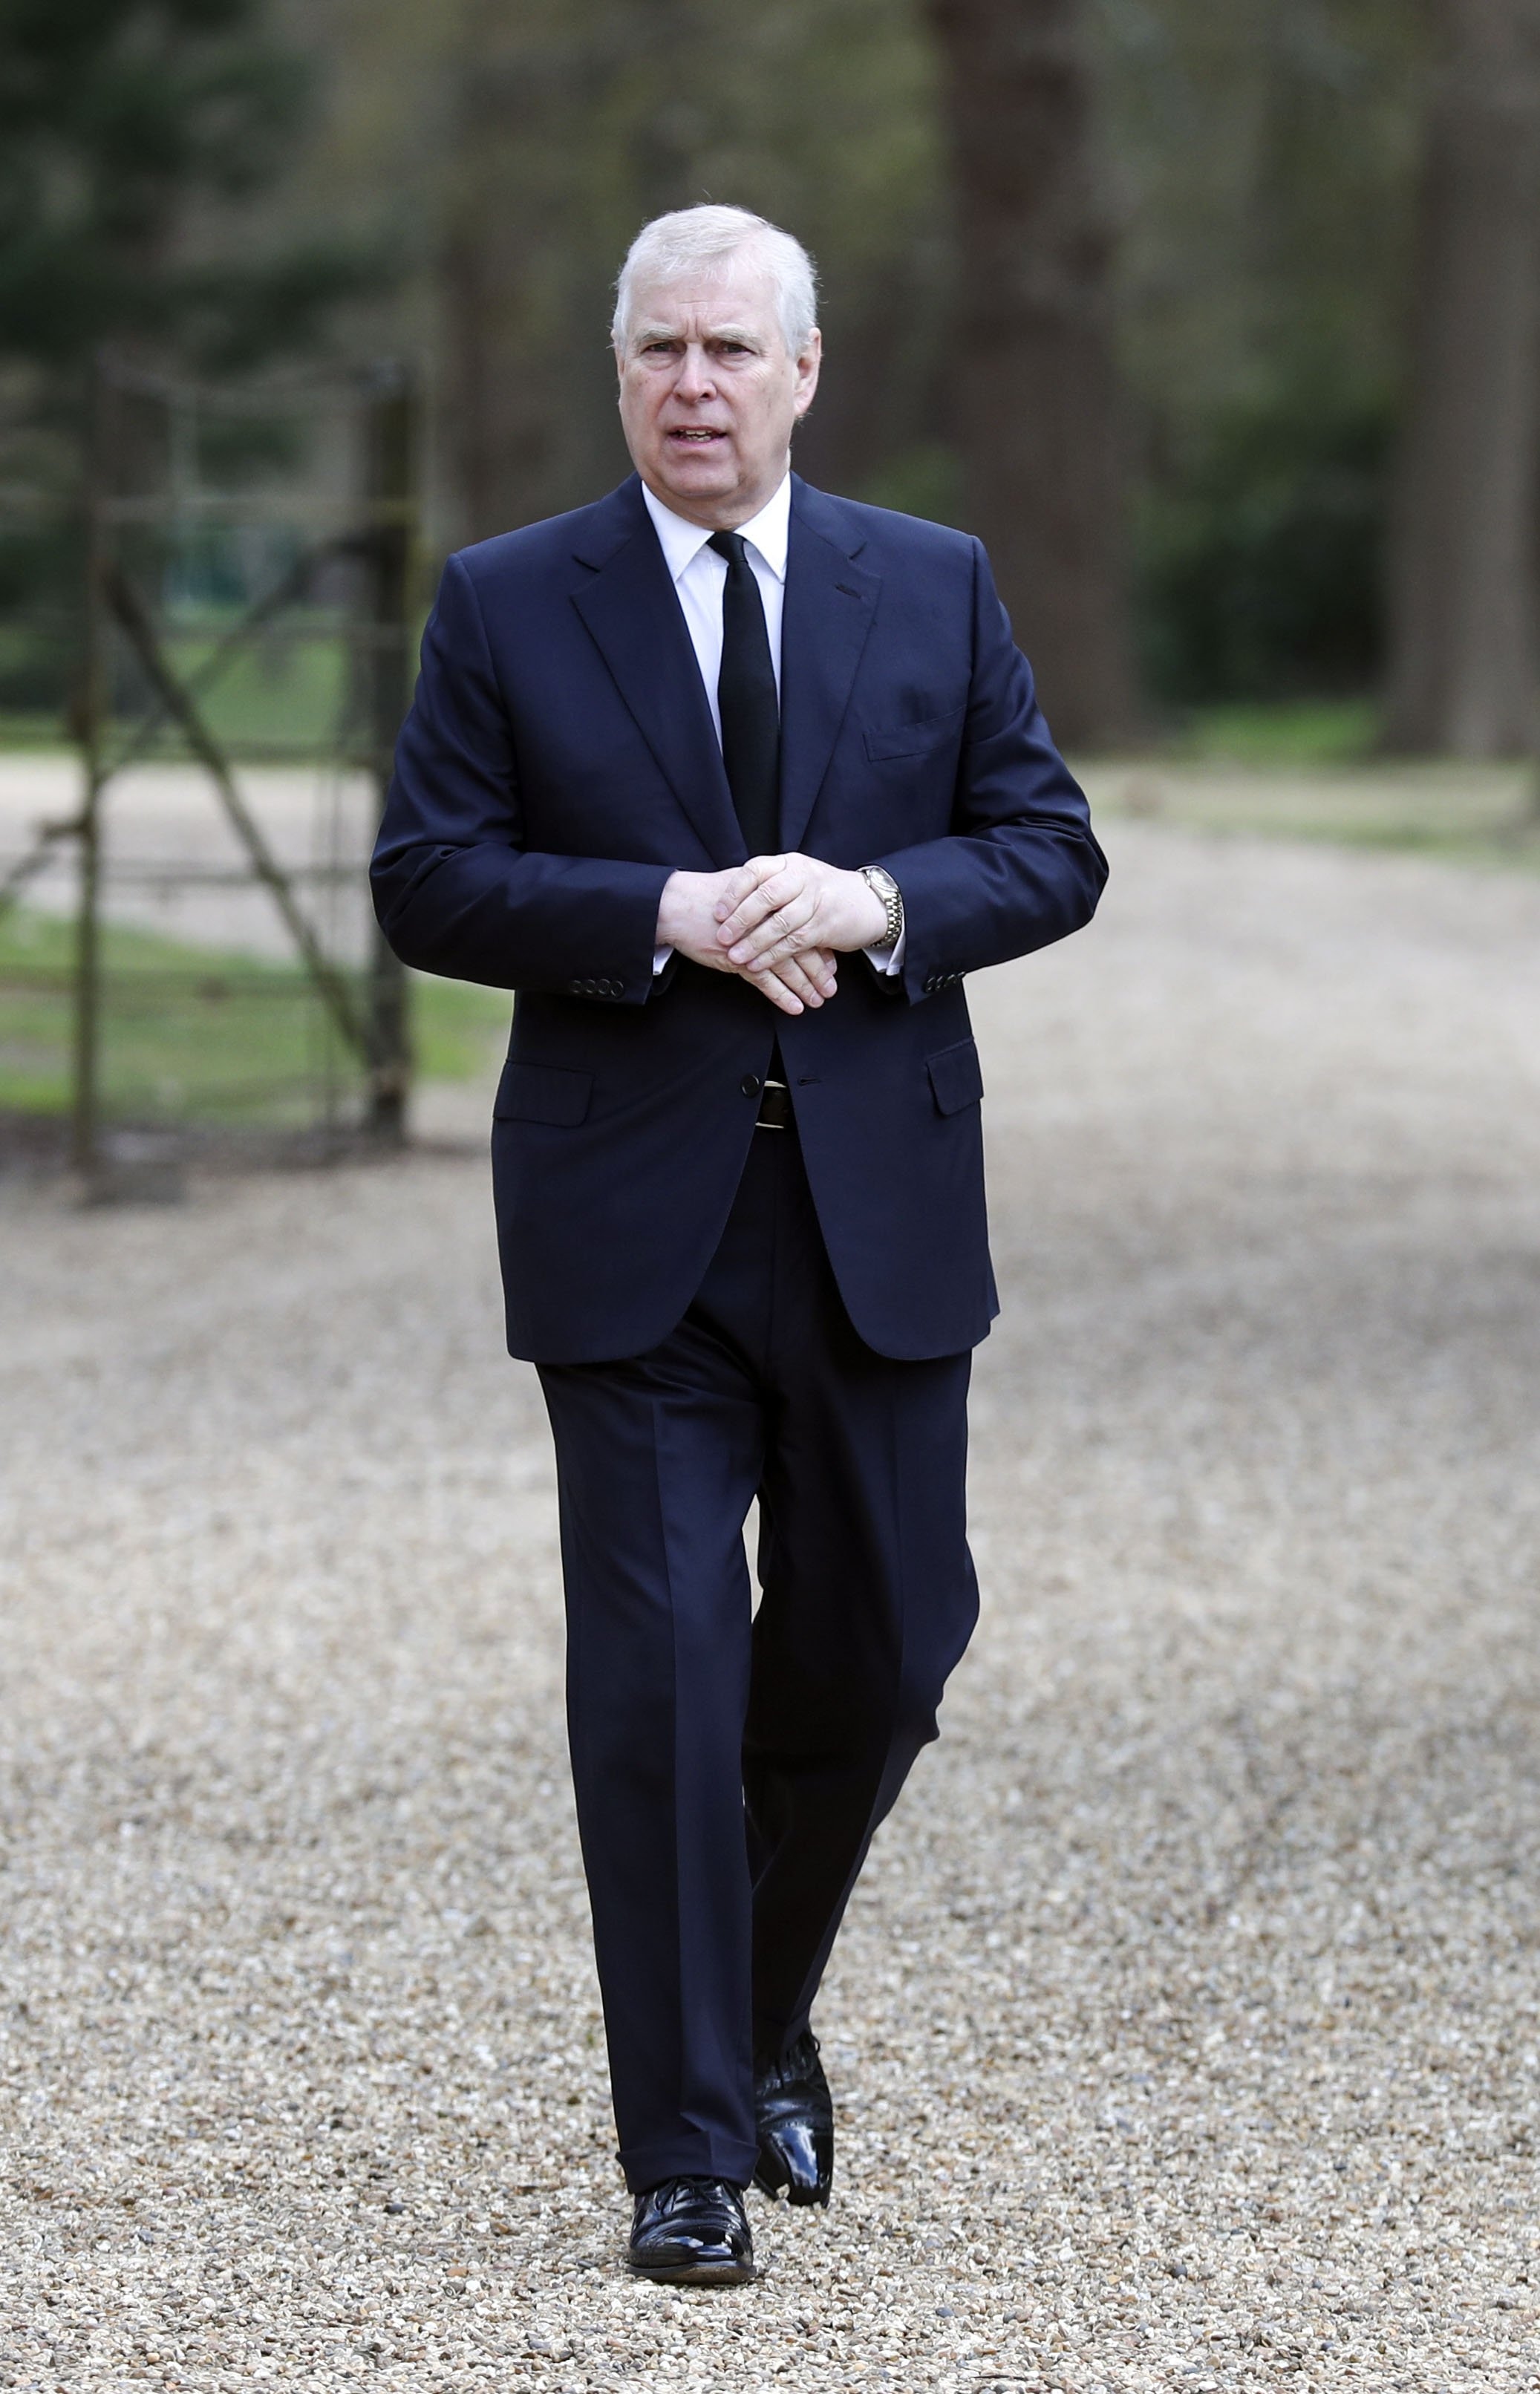 Prince Andrew, Duke of York, attends the Sunday Service at the Royal Chapel of All Saints on April 11, 2021 in Windsor, England | Photo: Getty Images